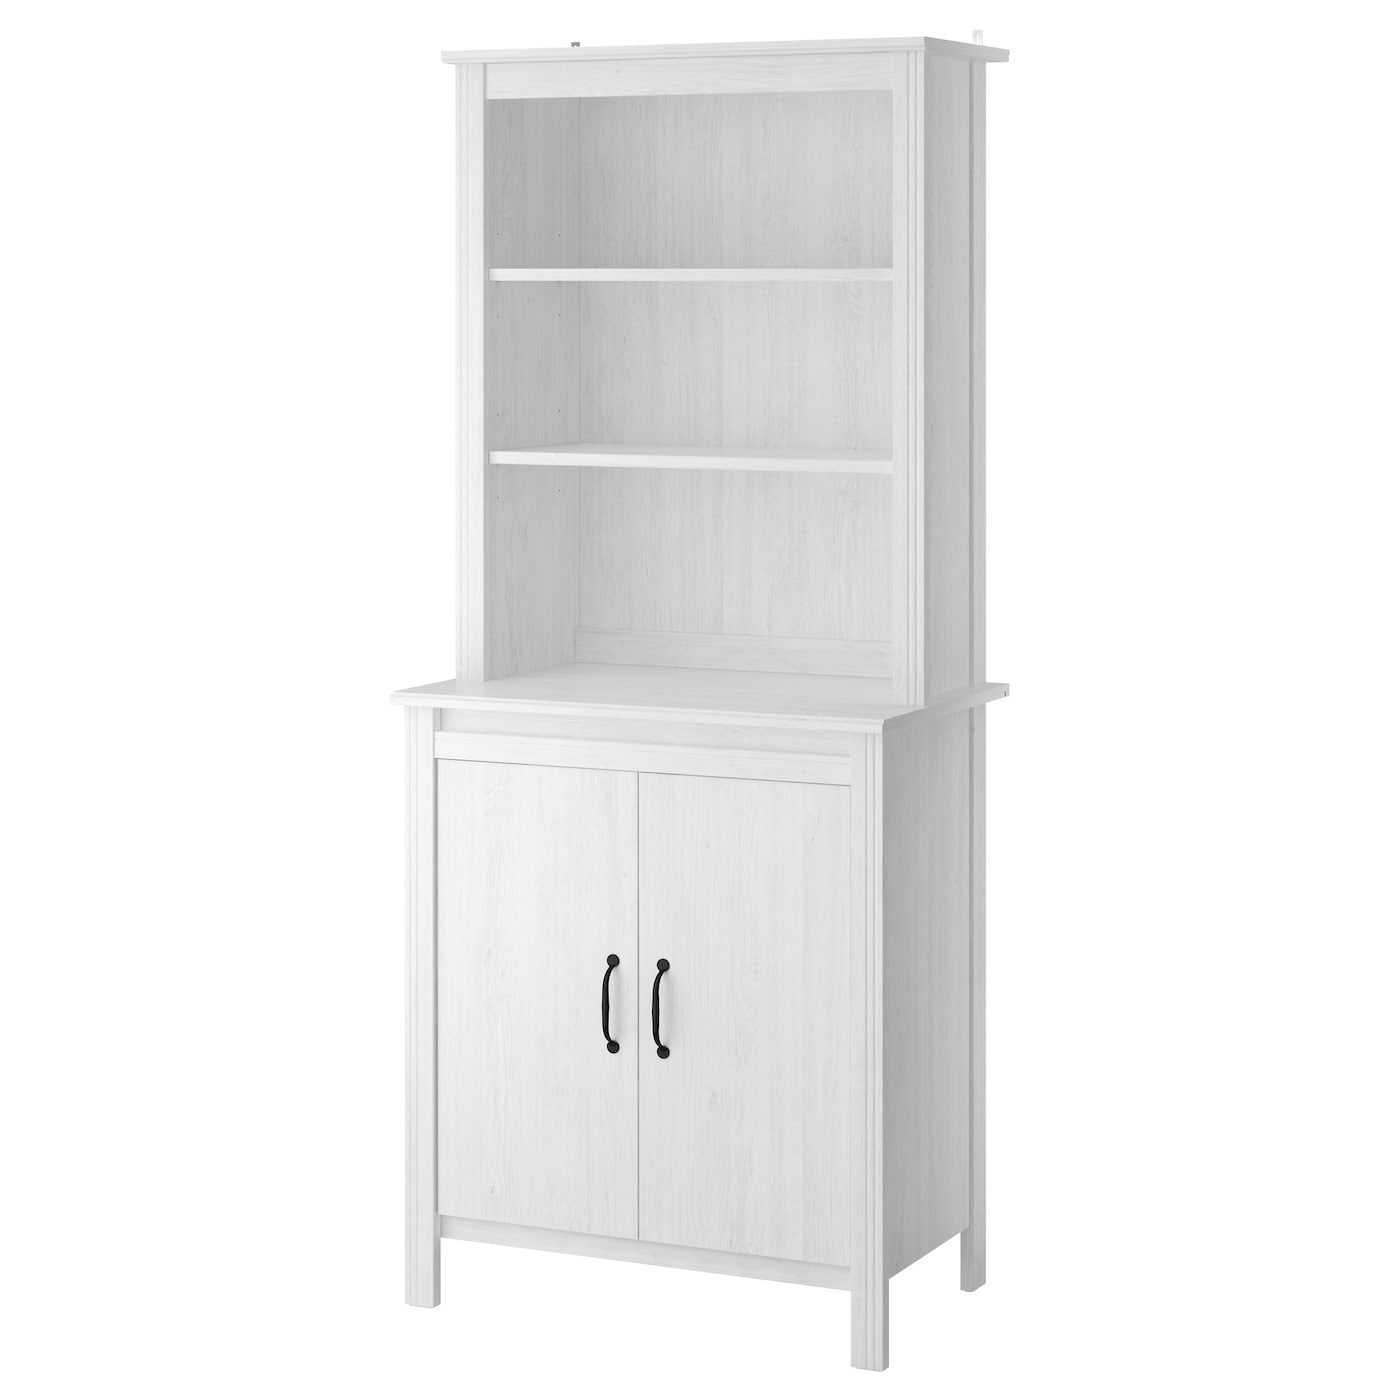 Super Brusali High Cabinet With Doors White Home Interior And Landscaping Transignezvosmurscom